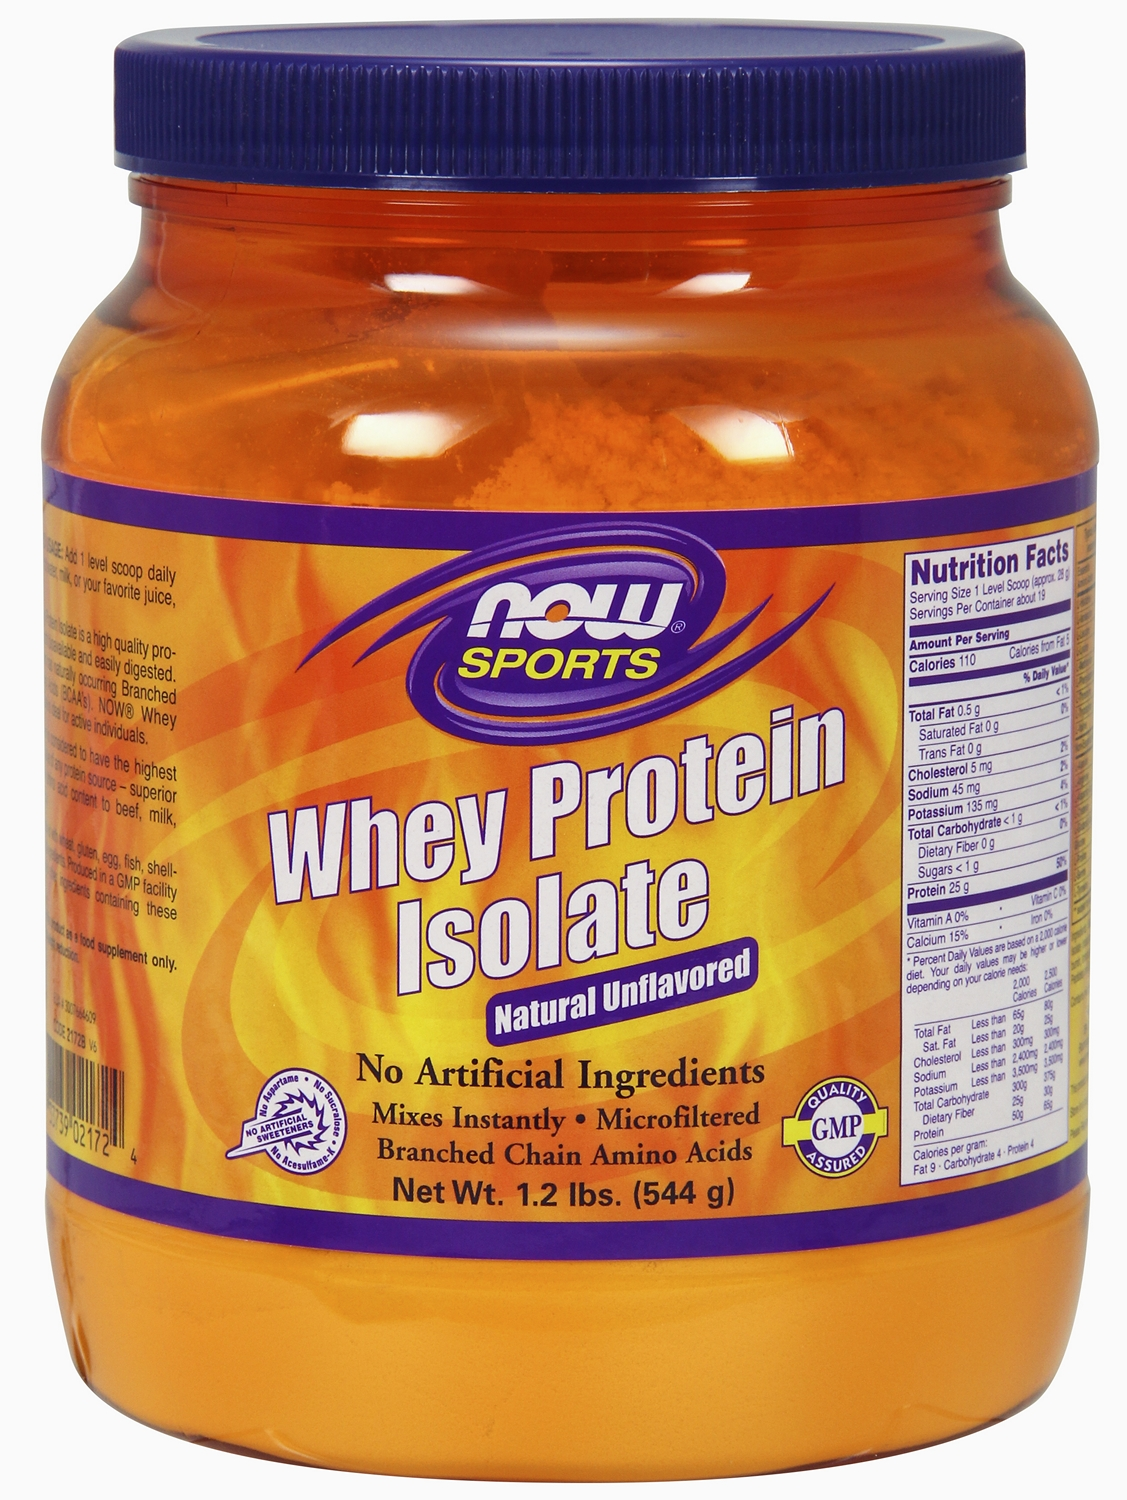 Whey Protein Isolate Unflavored 5 lb (2268 g) by NOW